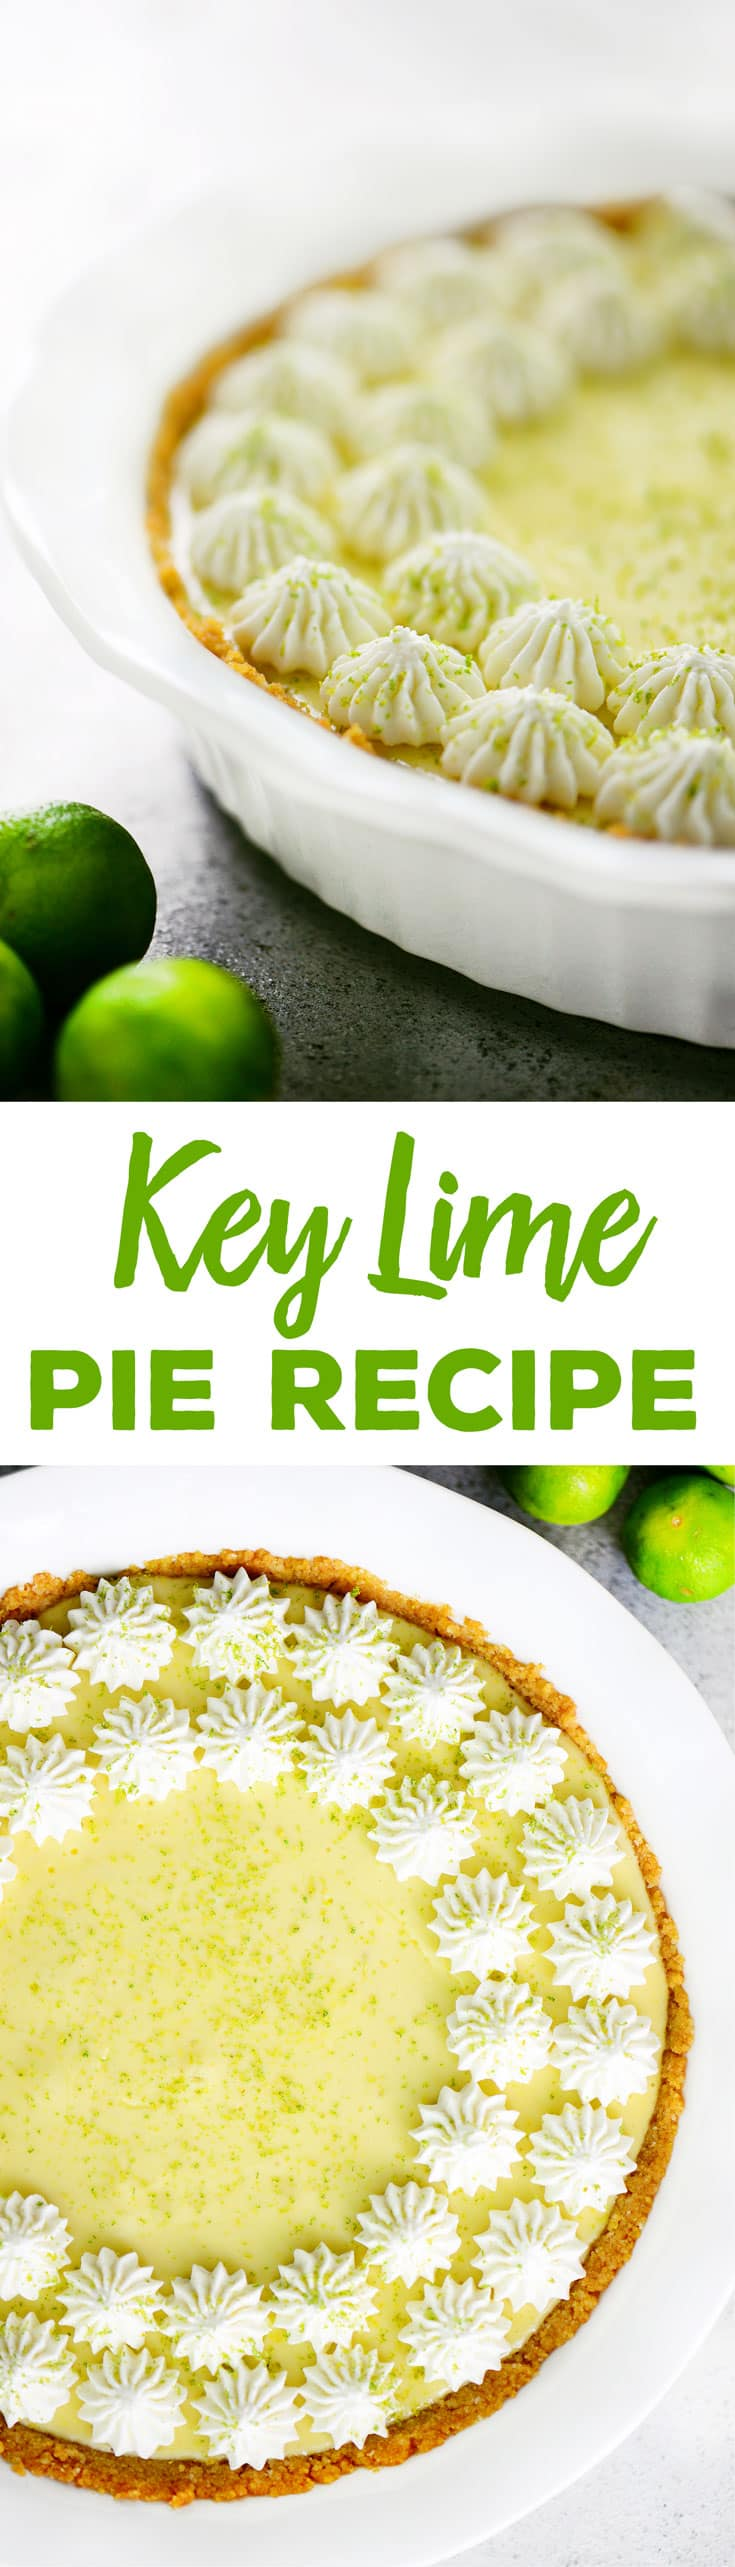 This homemade Key Lime Pie recipe is sweet and tart with a graham cracker and macadamia nut crust.